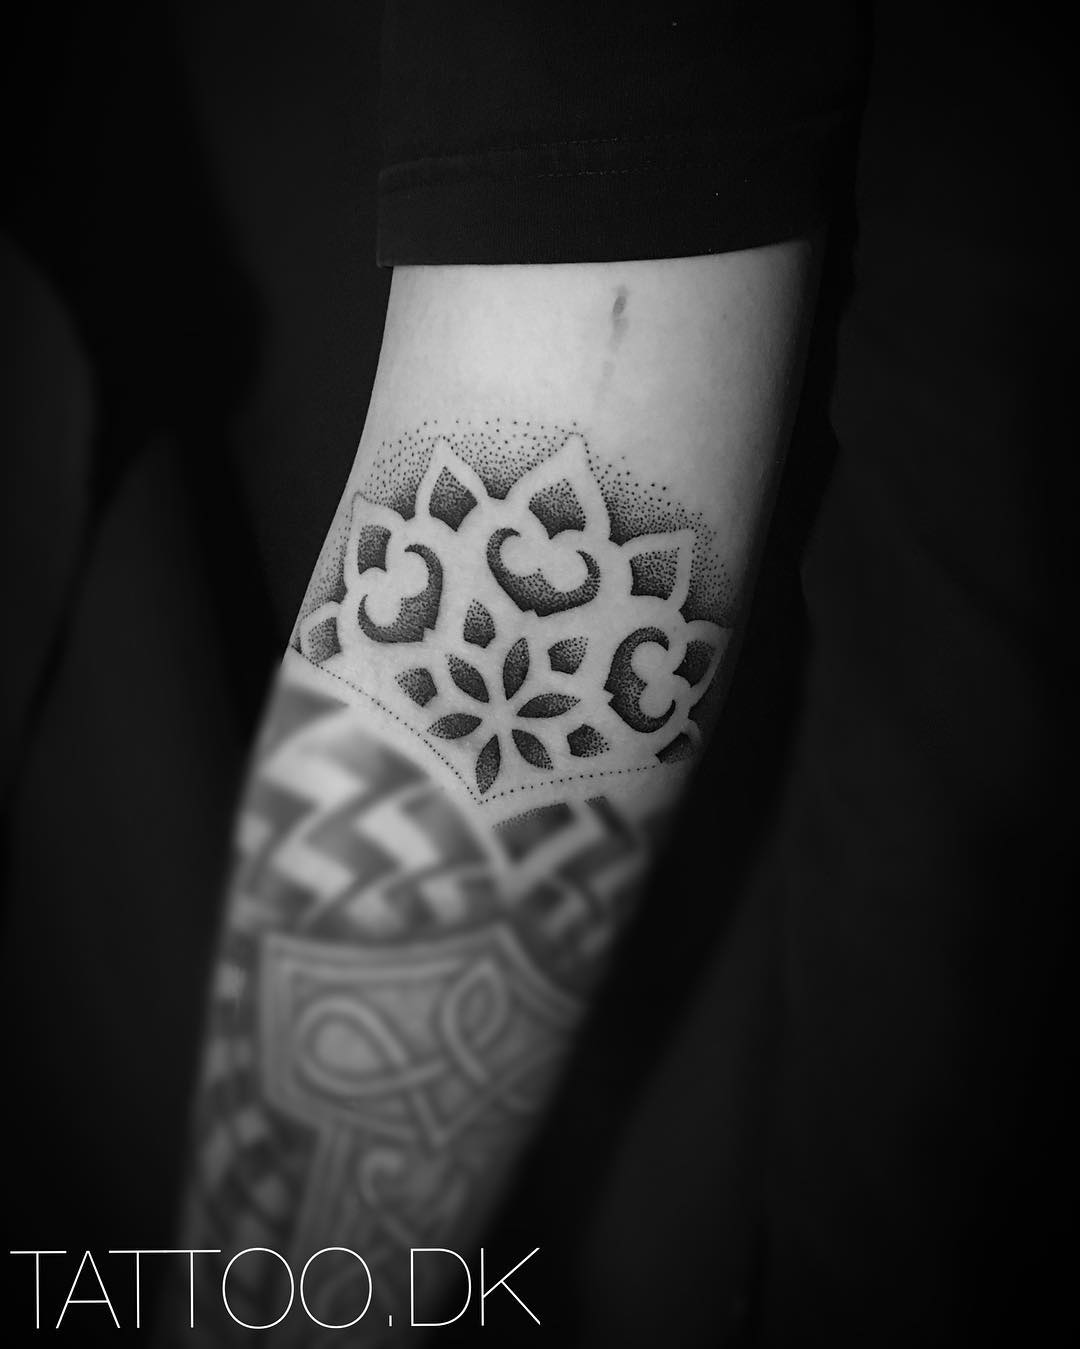 tattoo mandala by @tattoosbypatriciacampos